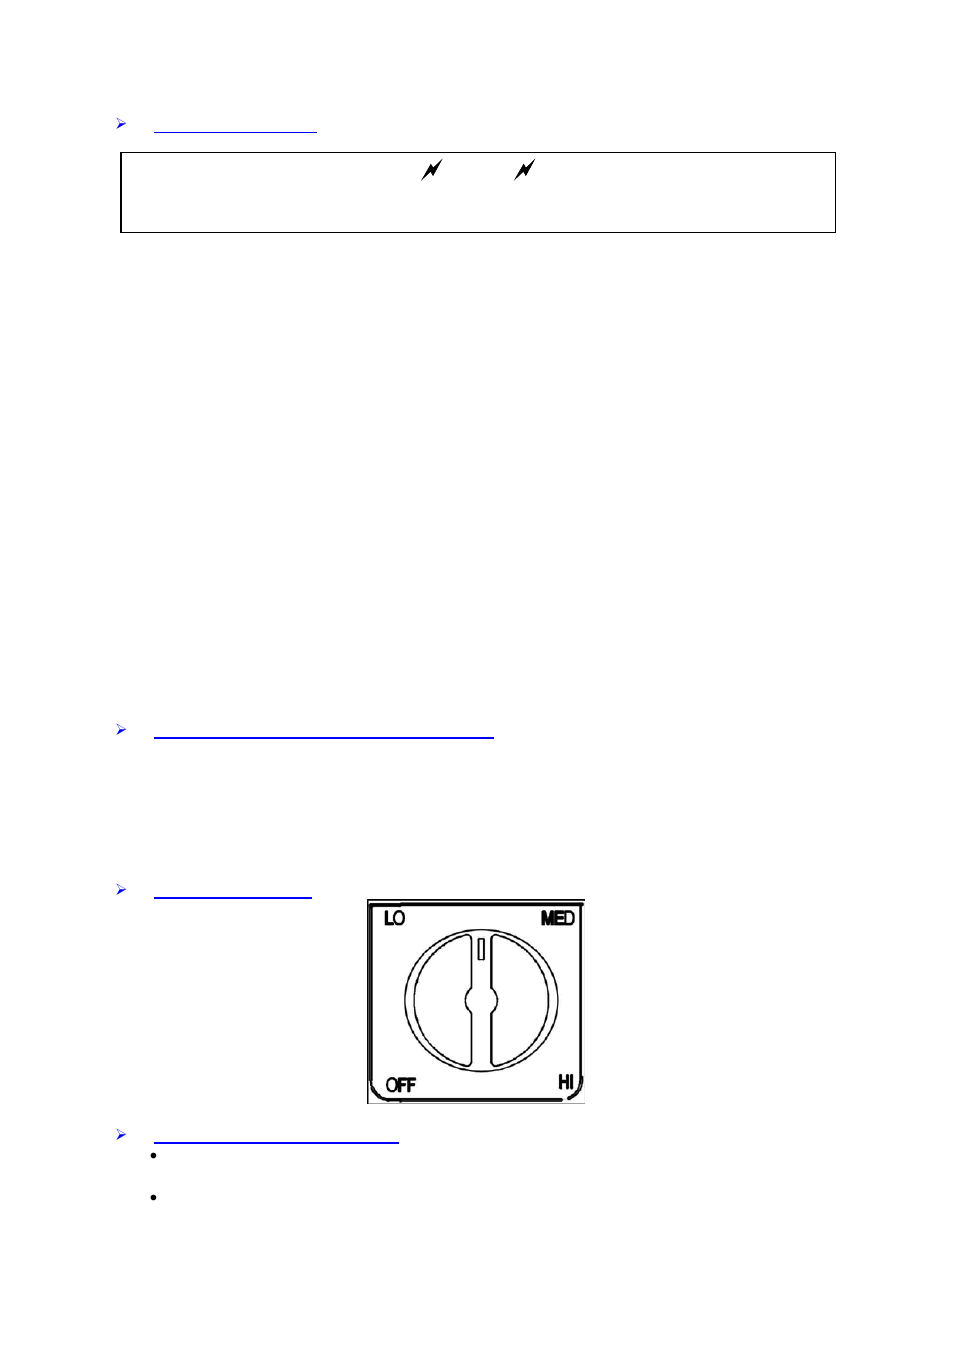 Electrical Connection Reversing The Door Swing Of Your Appliance Power Cord Wiring Together With Side By Refrigerator Diagram Operating Avanti Shp1701b User Manual Page 8 16